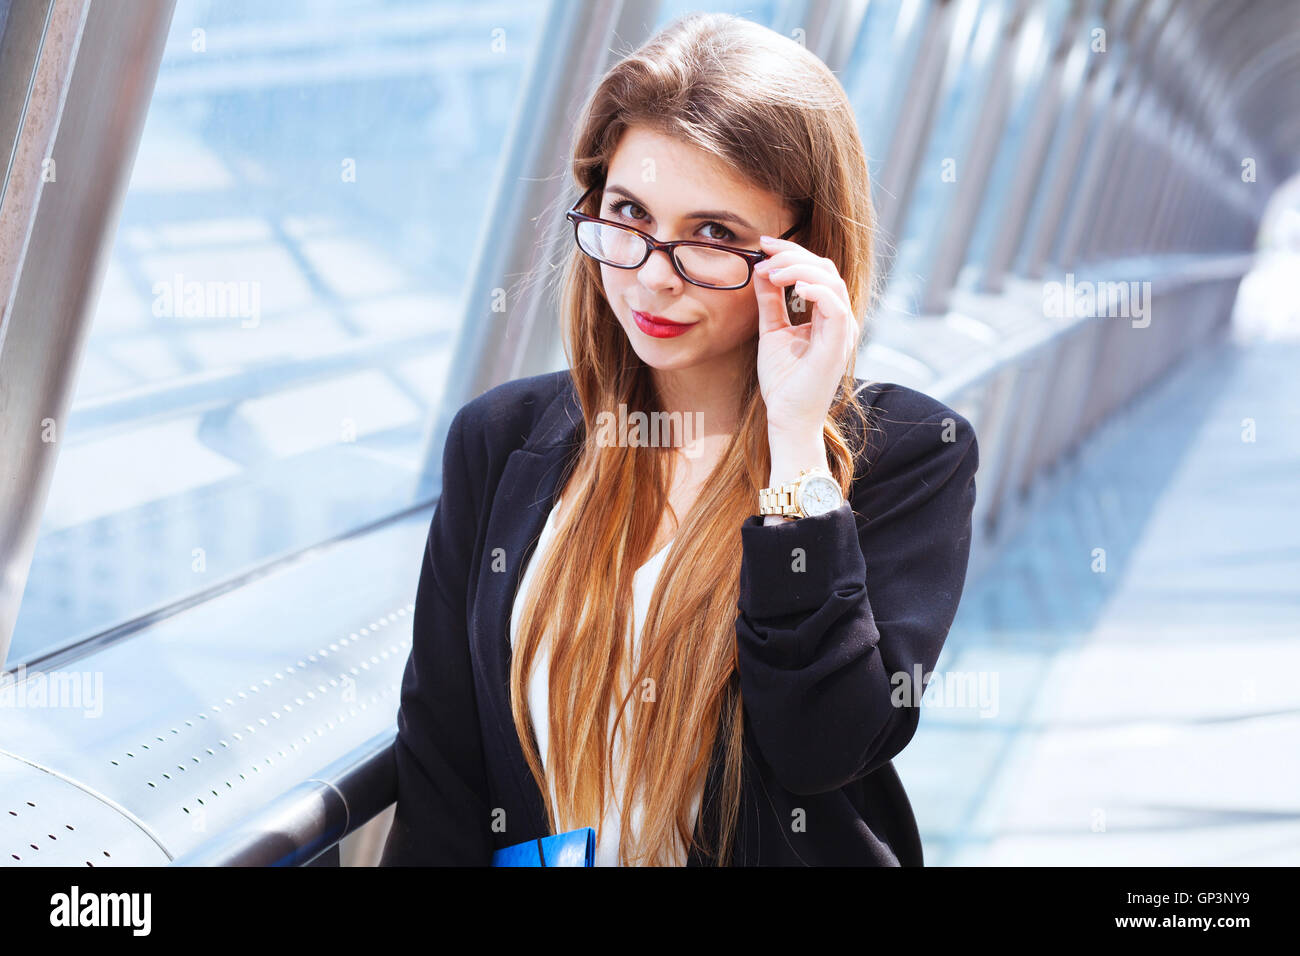 suspicious tricky strict business woman, real estate agent - Stock Image